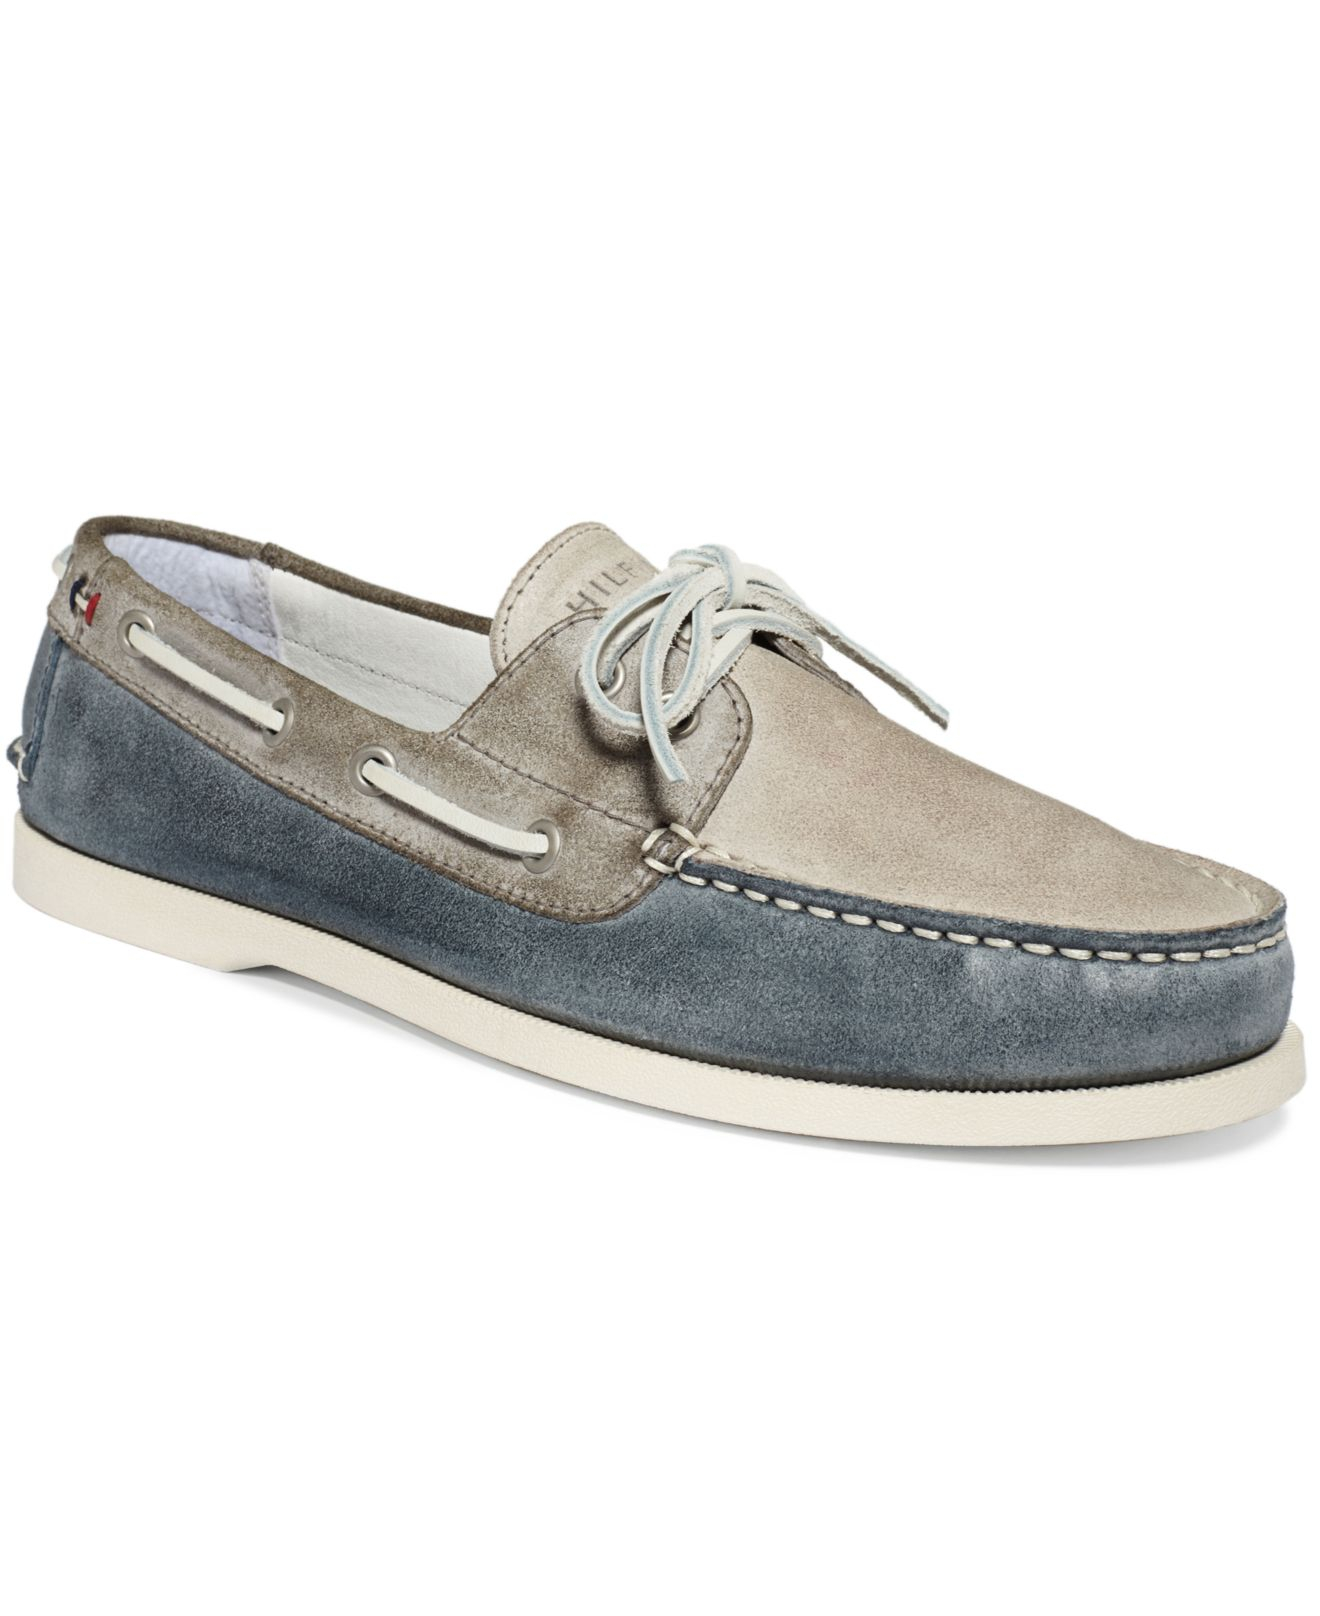 77175cb7e0f9 Lyst - Tommy Hilfiger Bowman Boat Shoes in Blue for Men